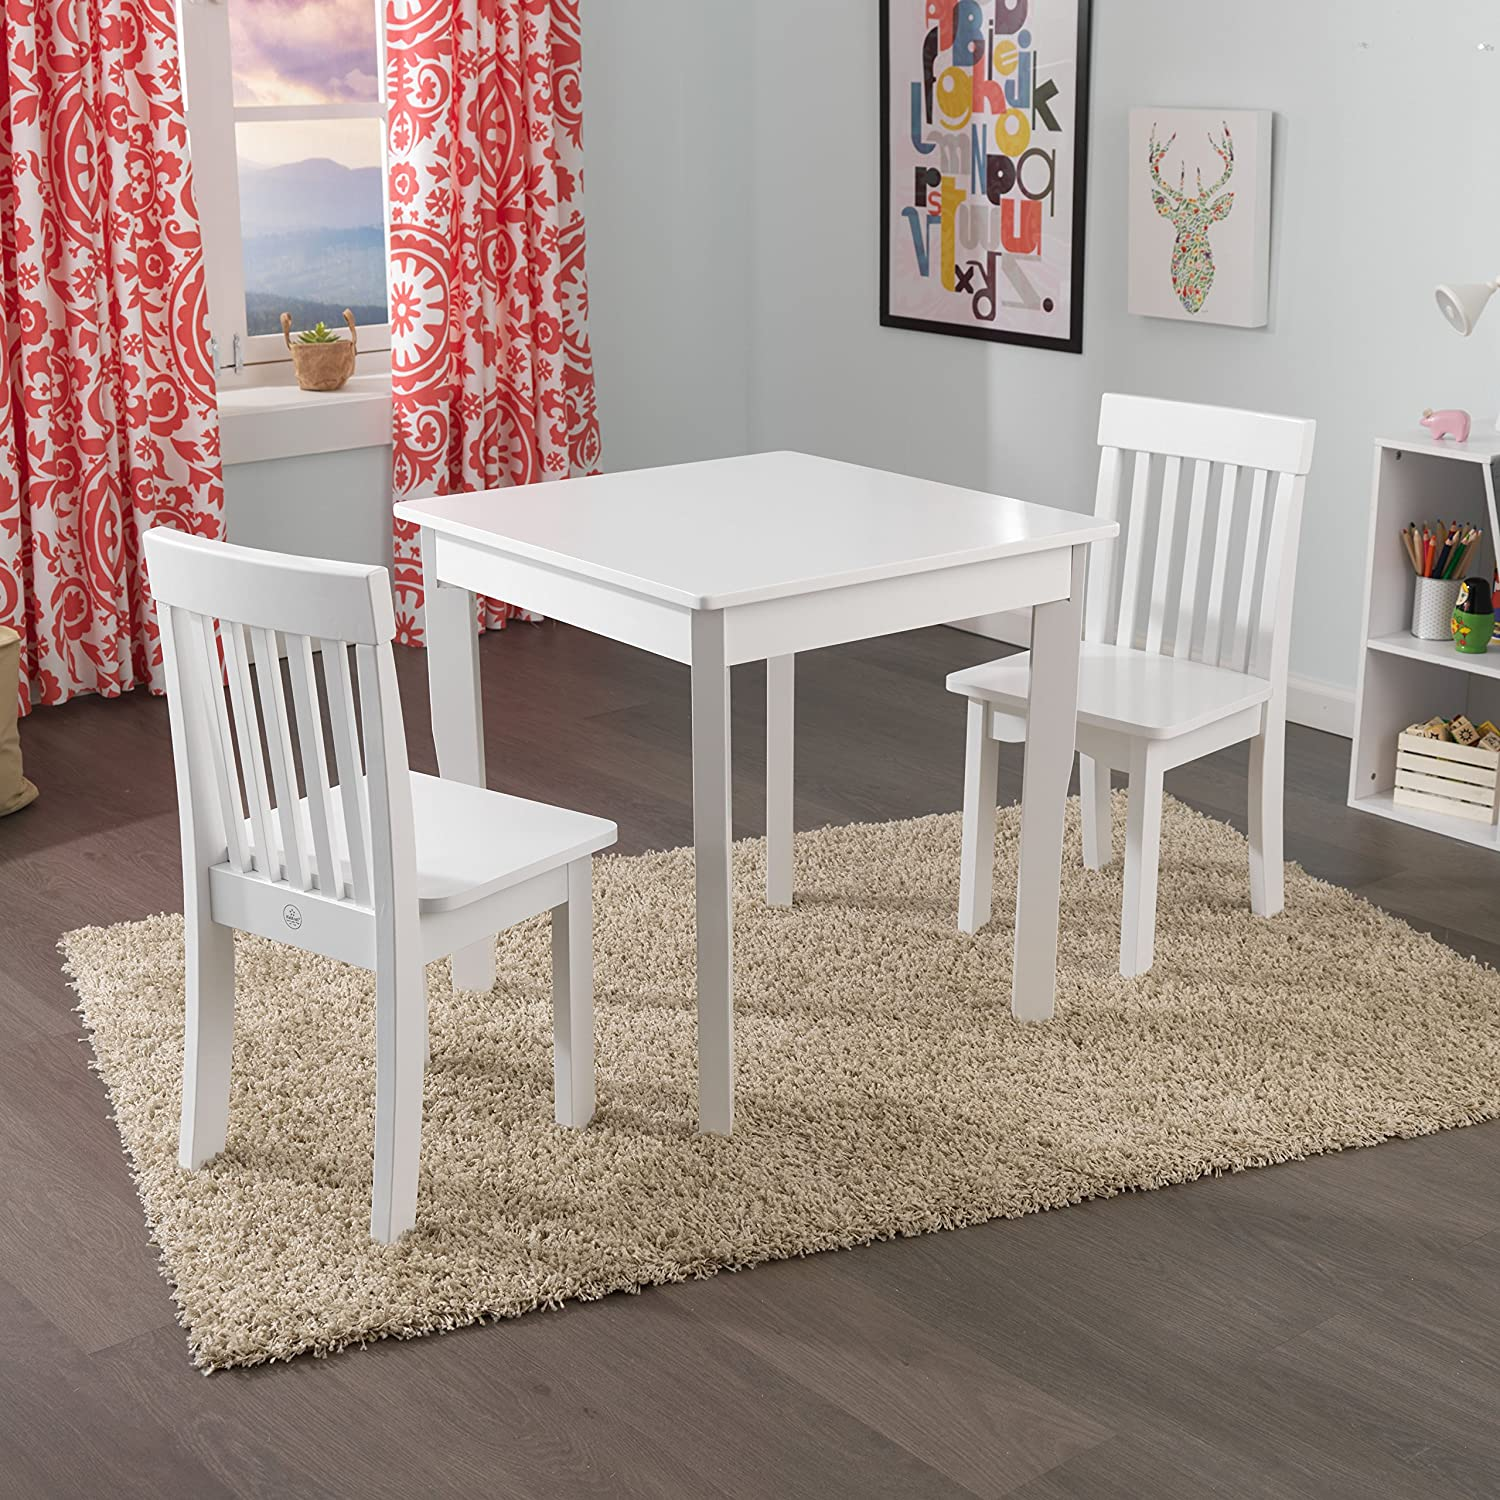 Amazon KidKraft Square Table & 2 Avalon Chair Set White